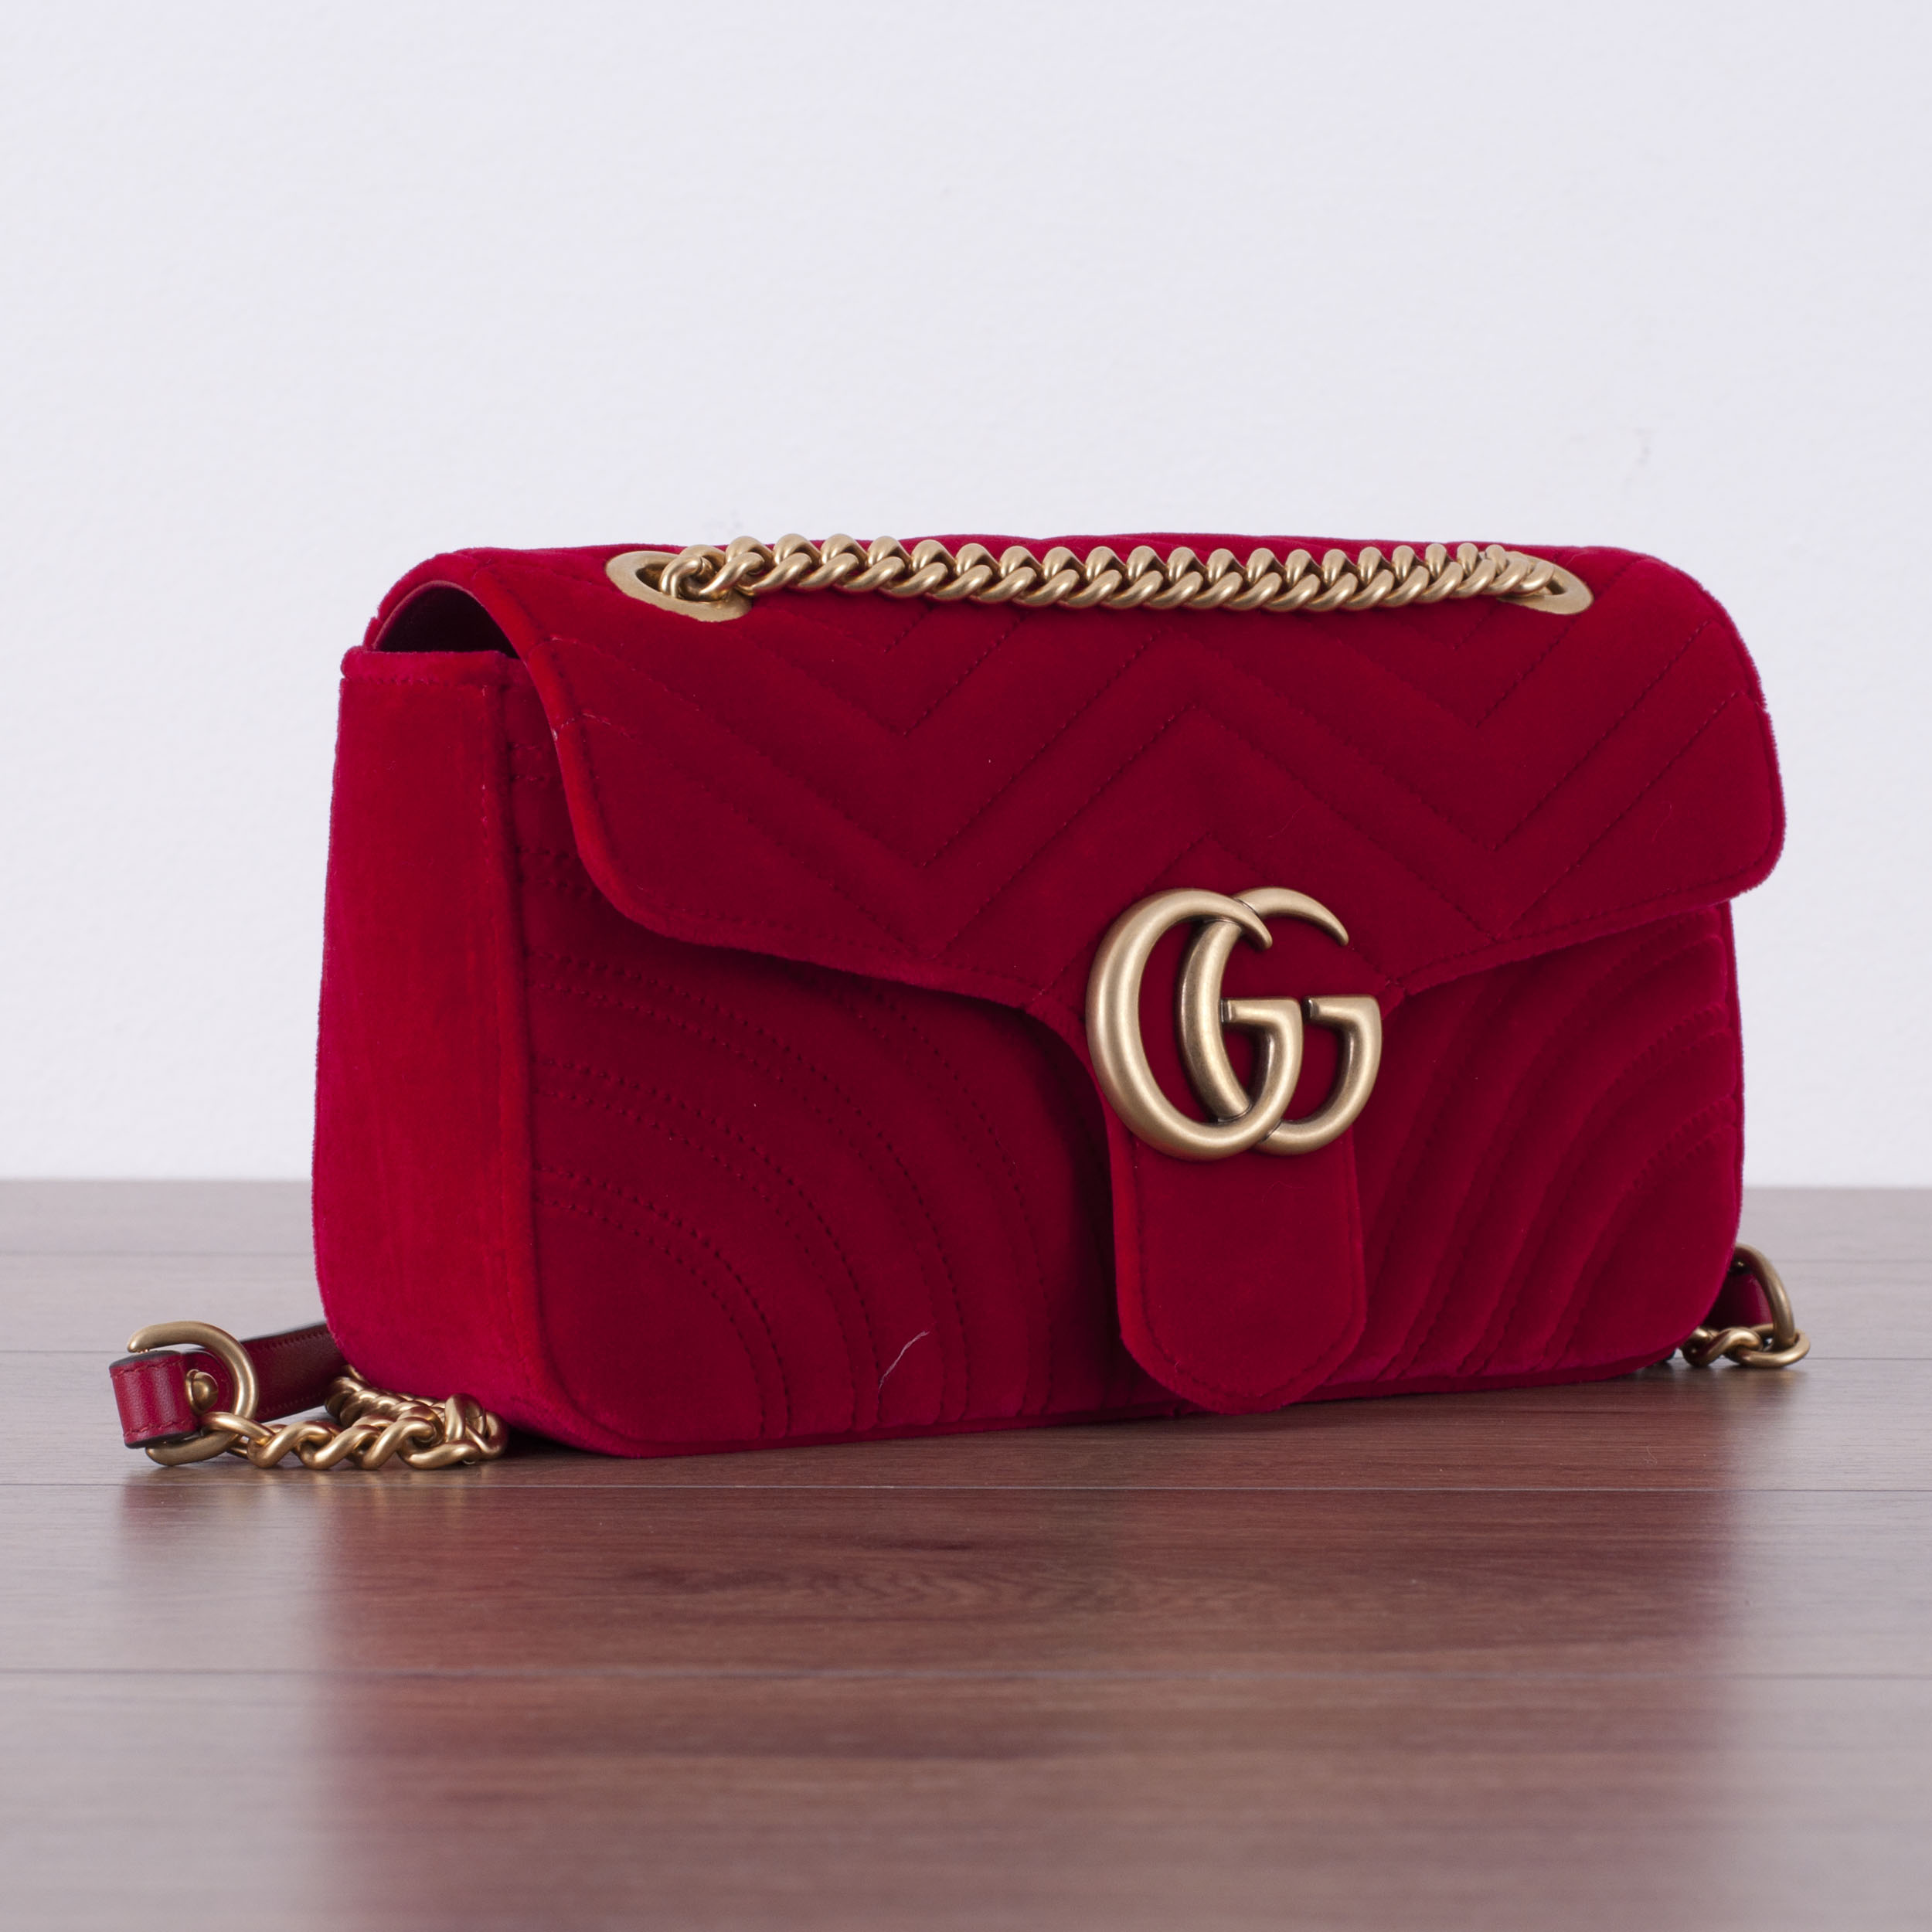 dca9d0b0a2ba Gucci Marmont New Handbag On Ebay | Stanford Center for Opportunity ...